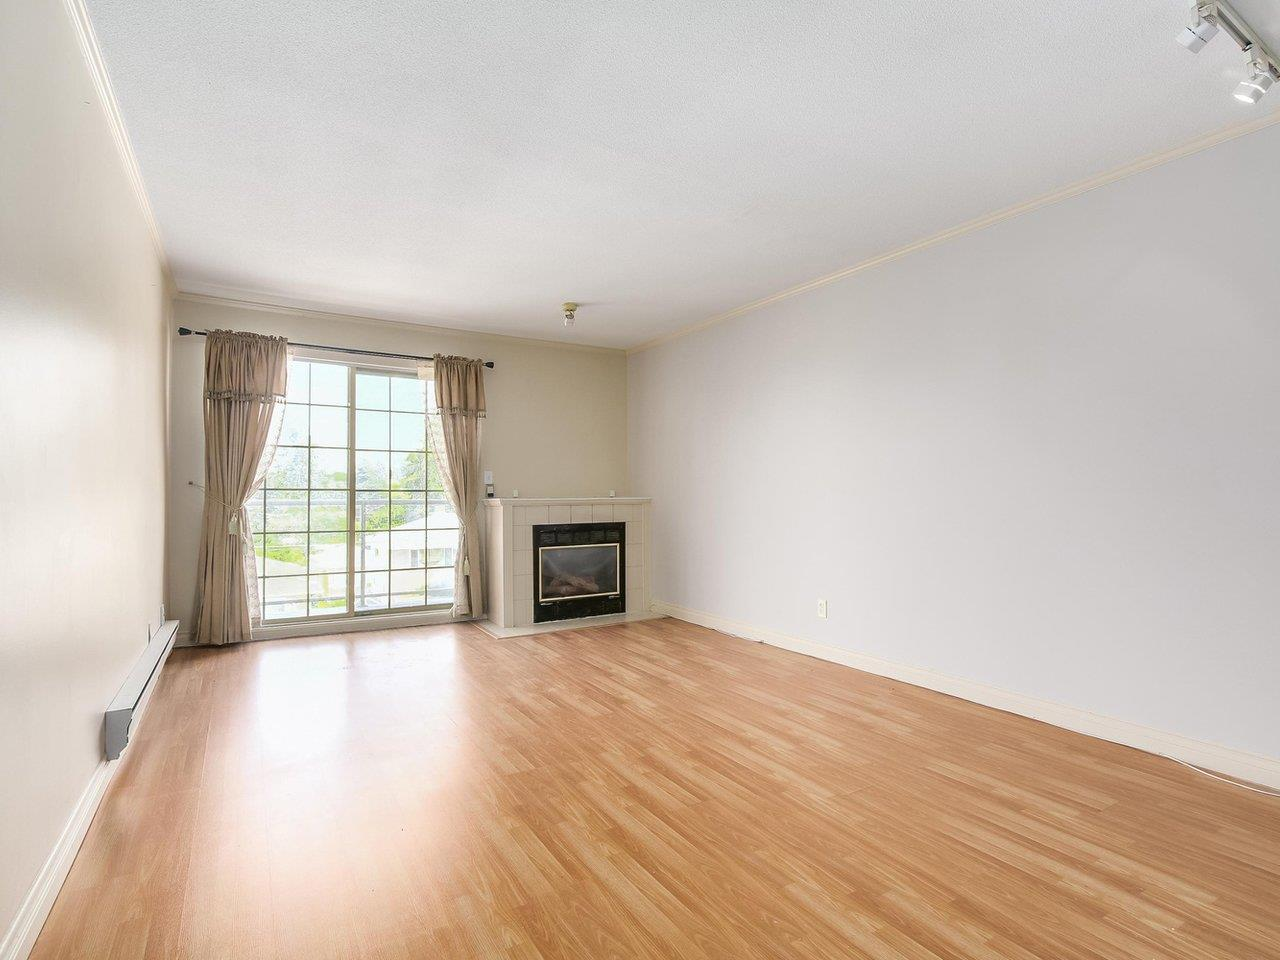 Condo Apartment at 311 13490 HILTON ROAD, Unit 311, North Surrey, British Columbia. Image 2